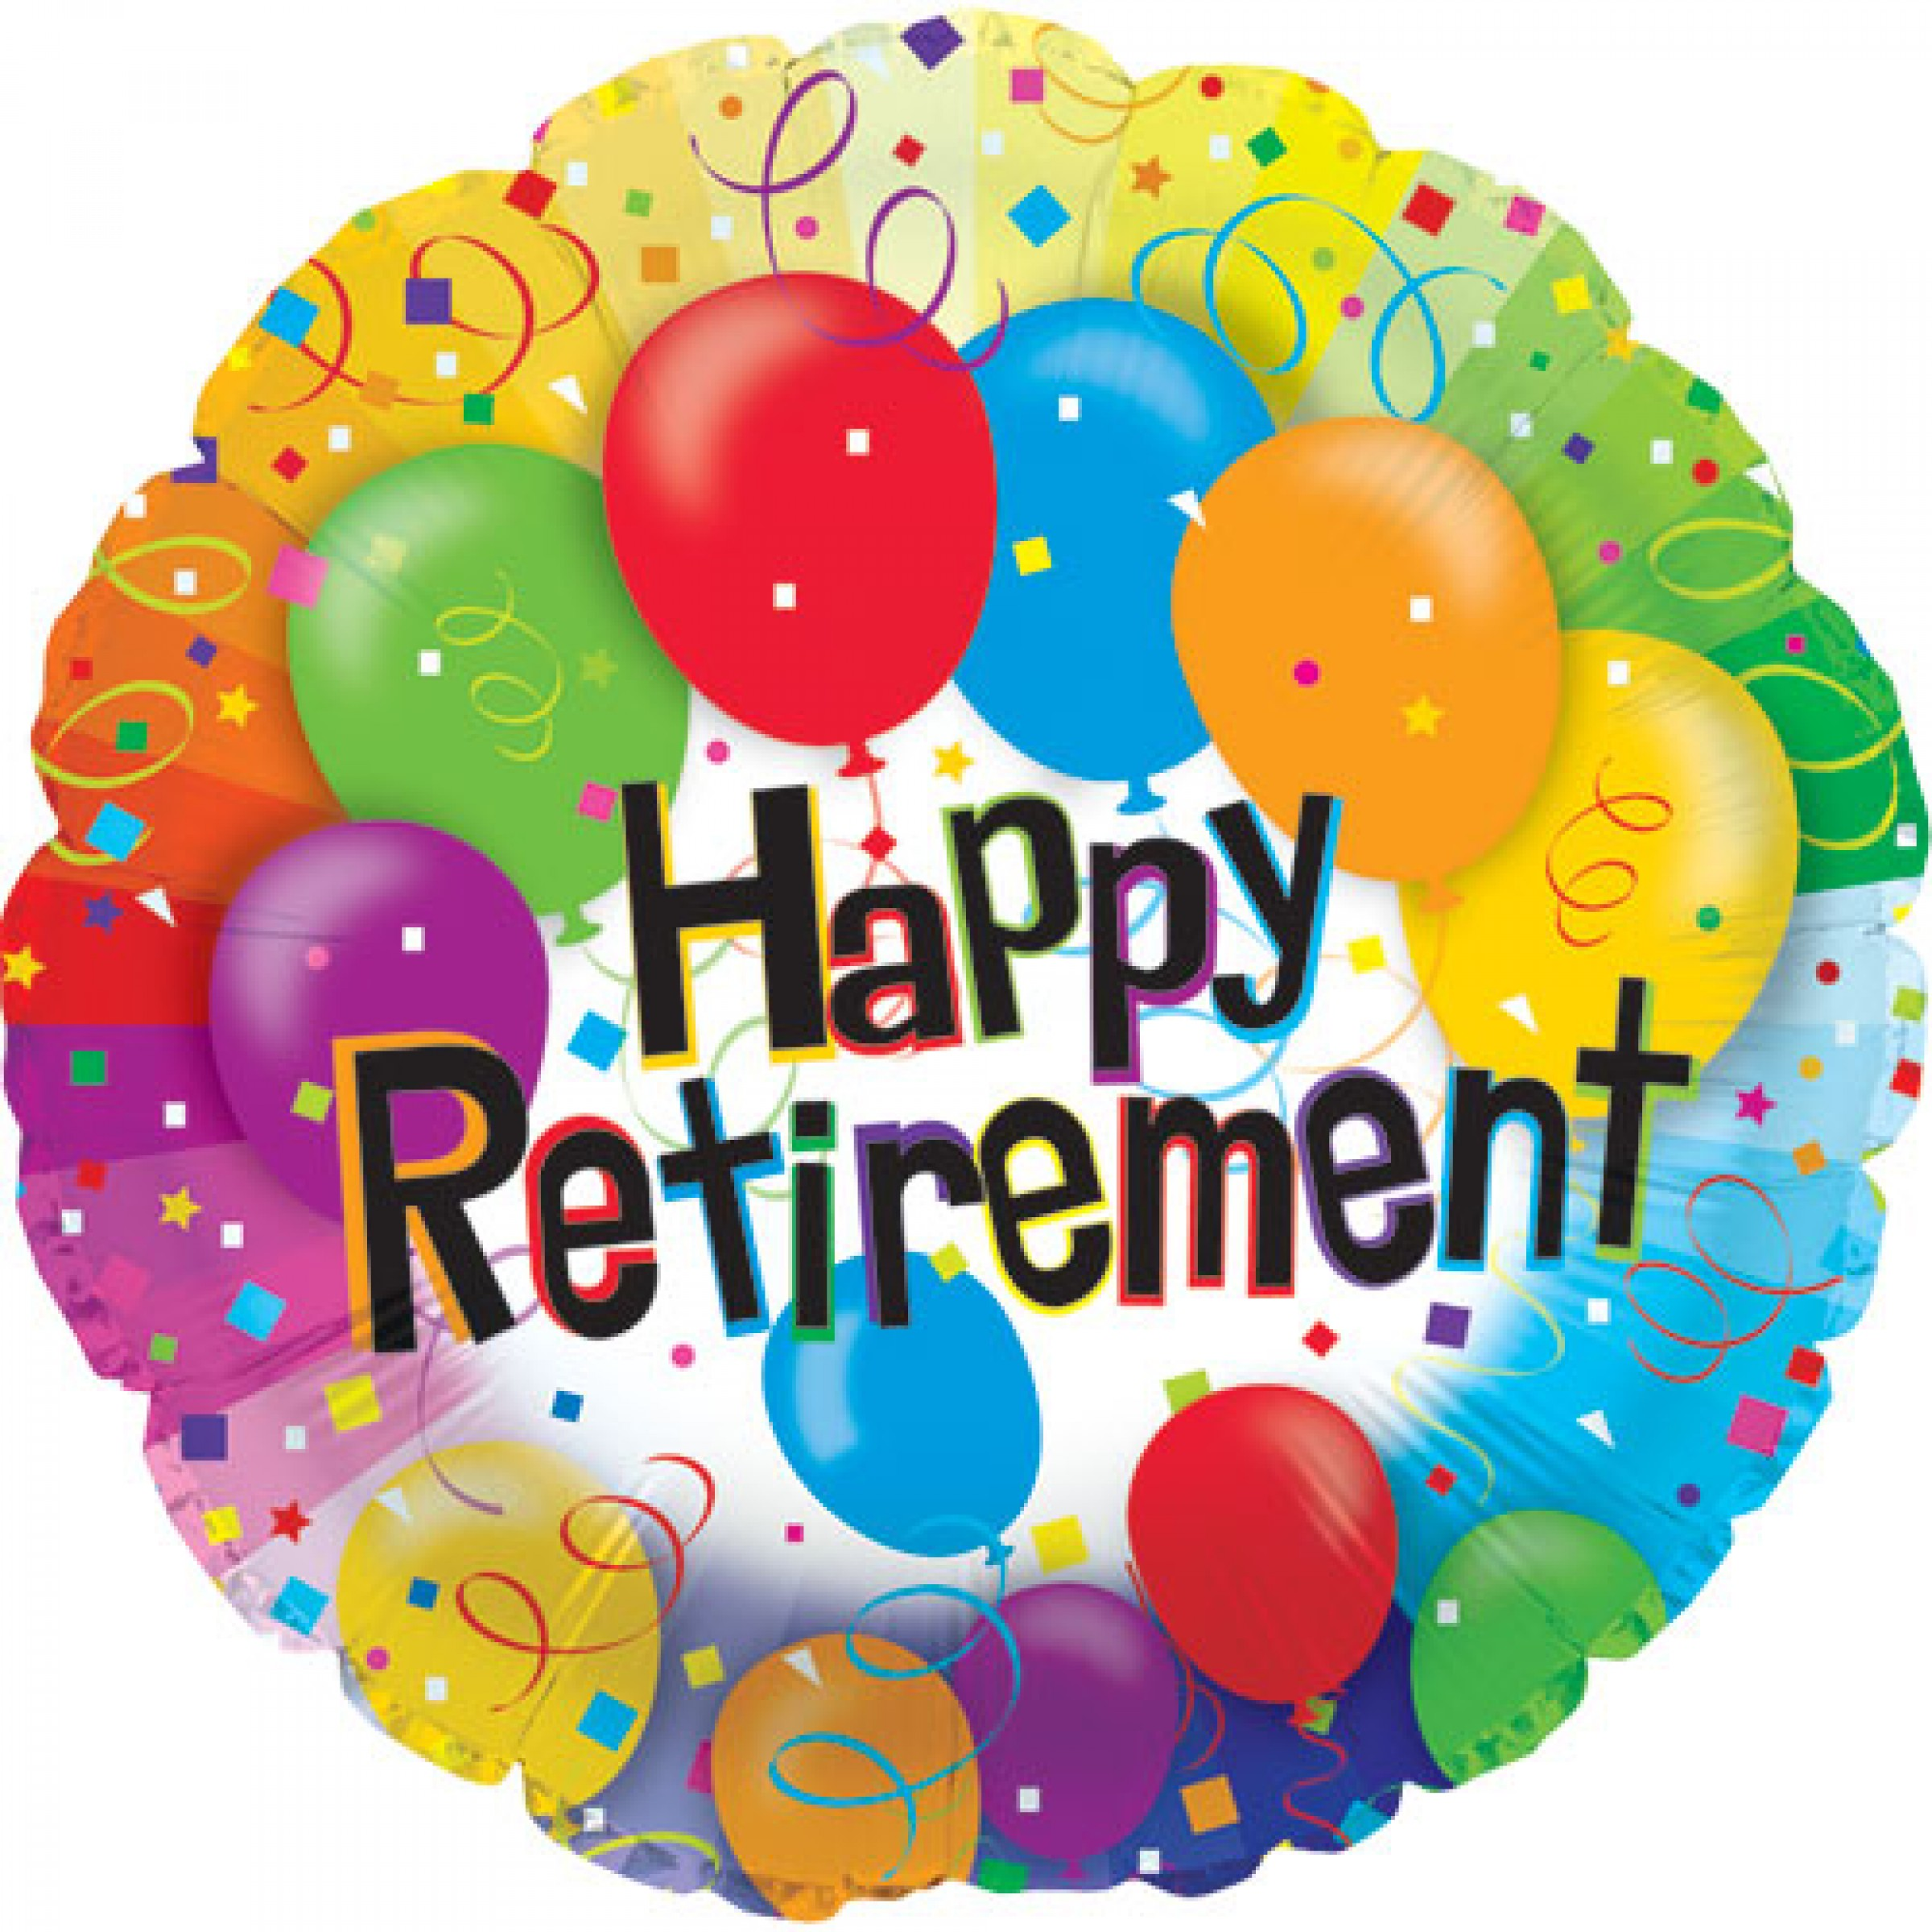 Happy Retirement! – Division of Facilities News